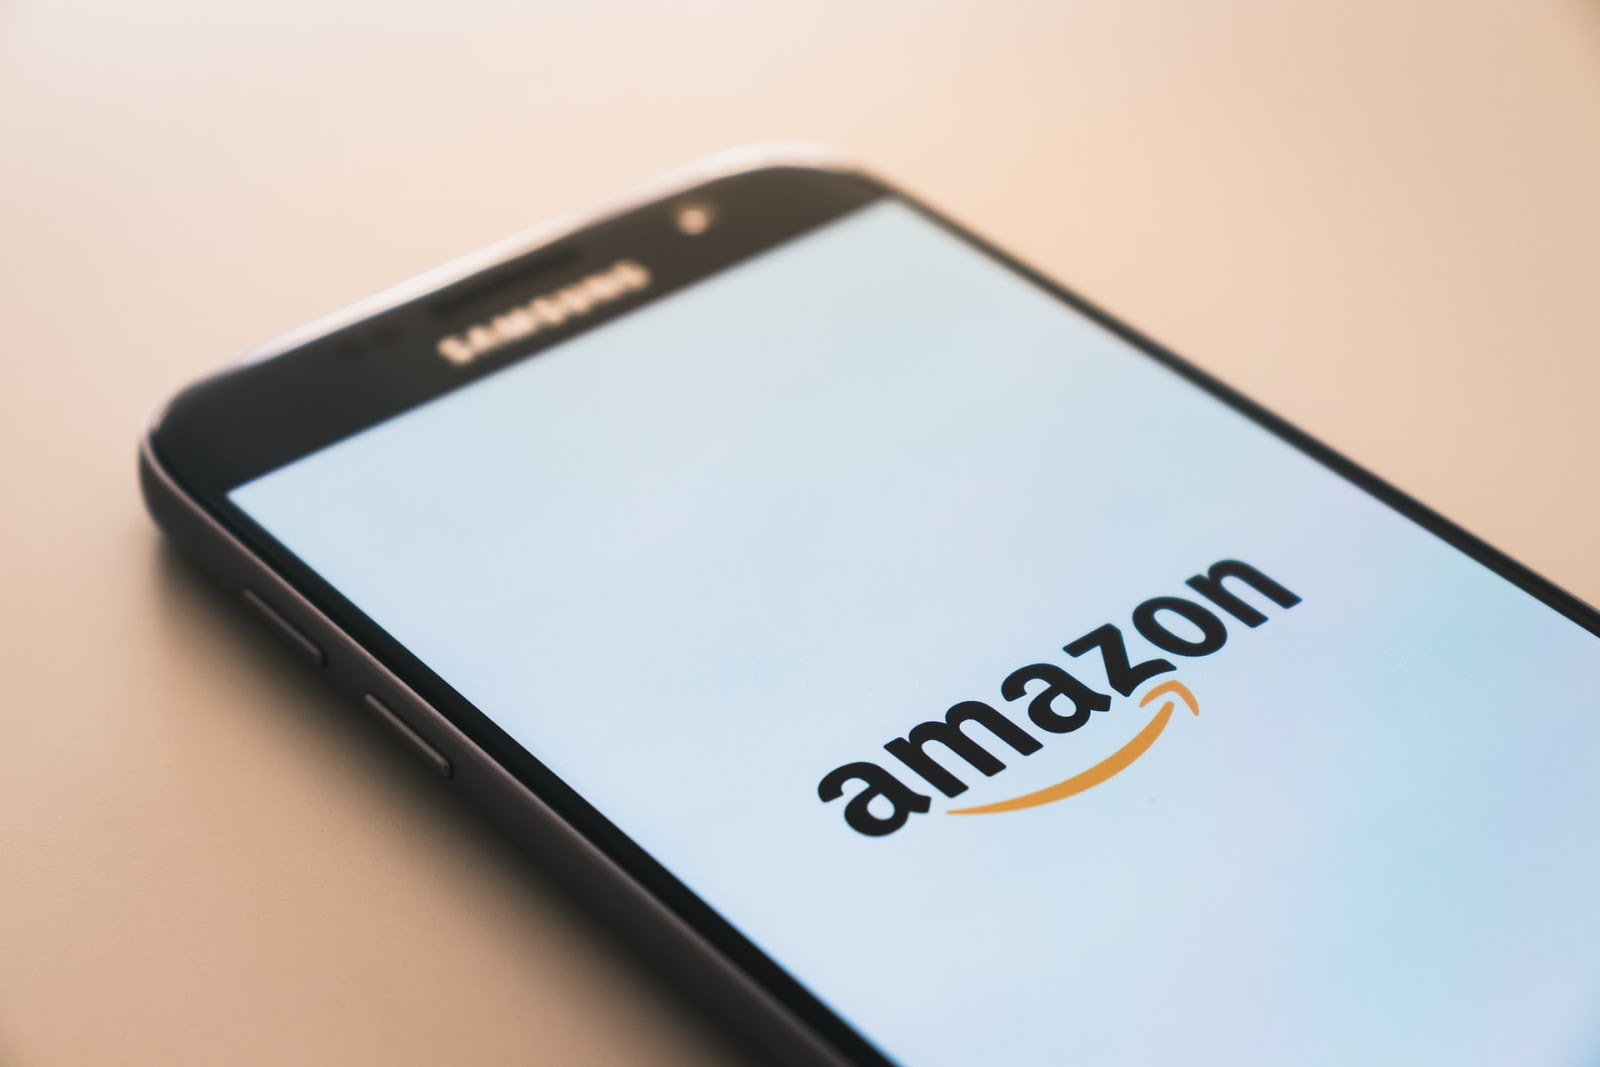 Amazon as an example of a great delivery policy – photo of Amazon logo on a phone